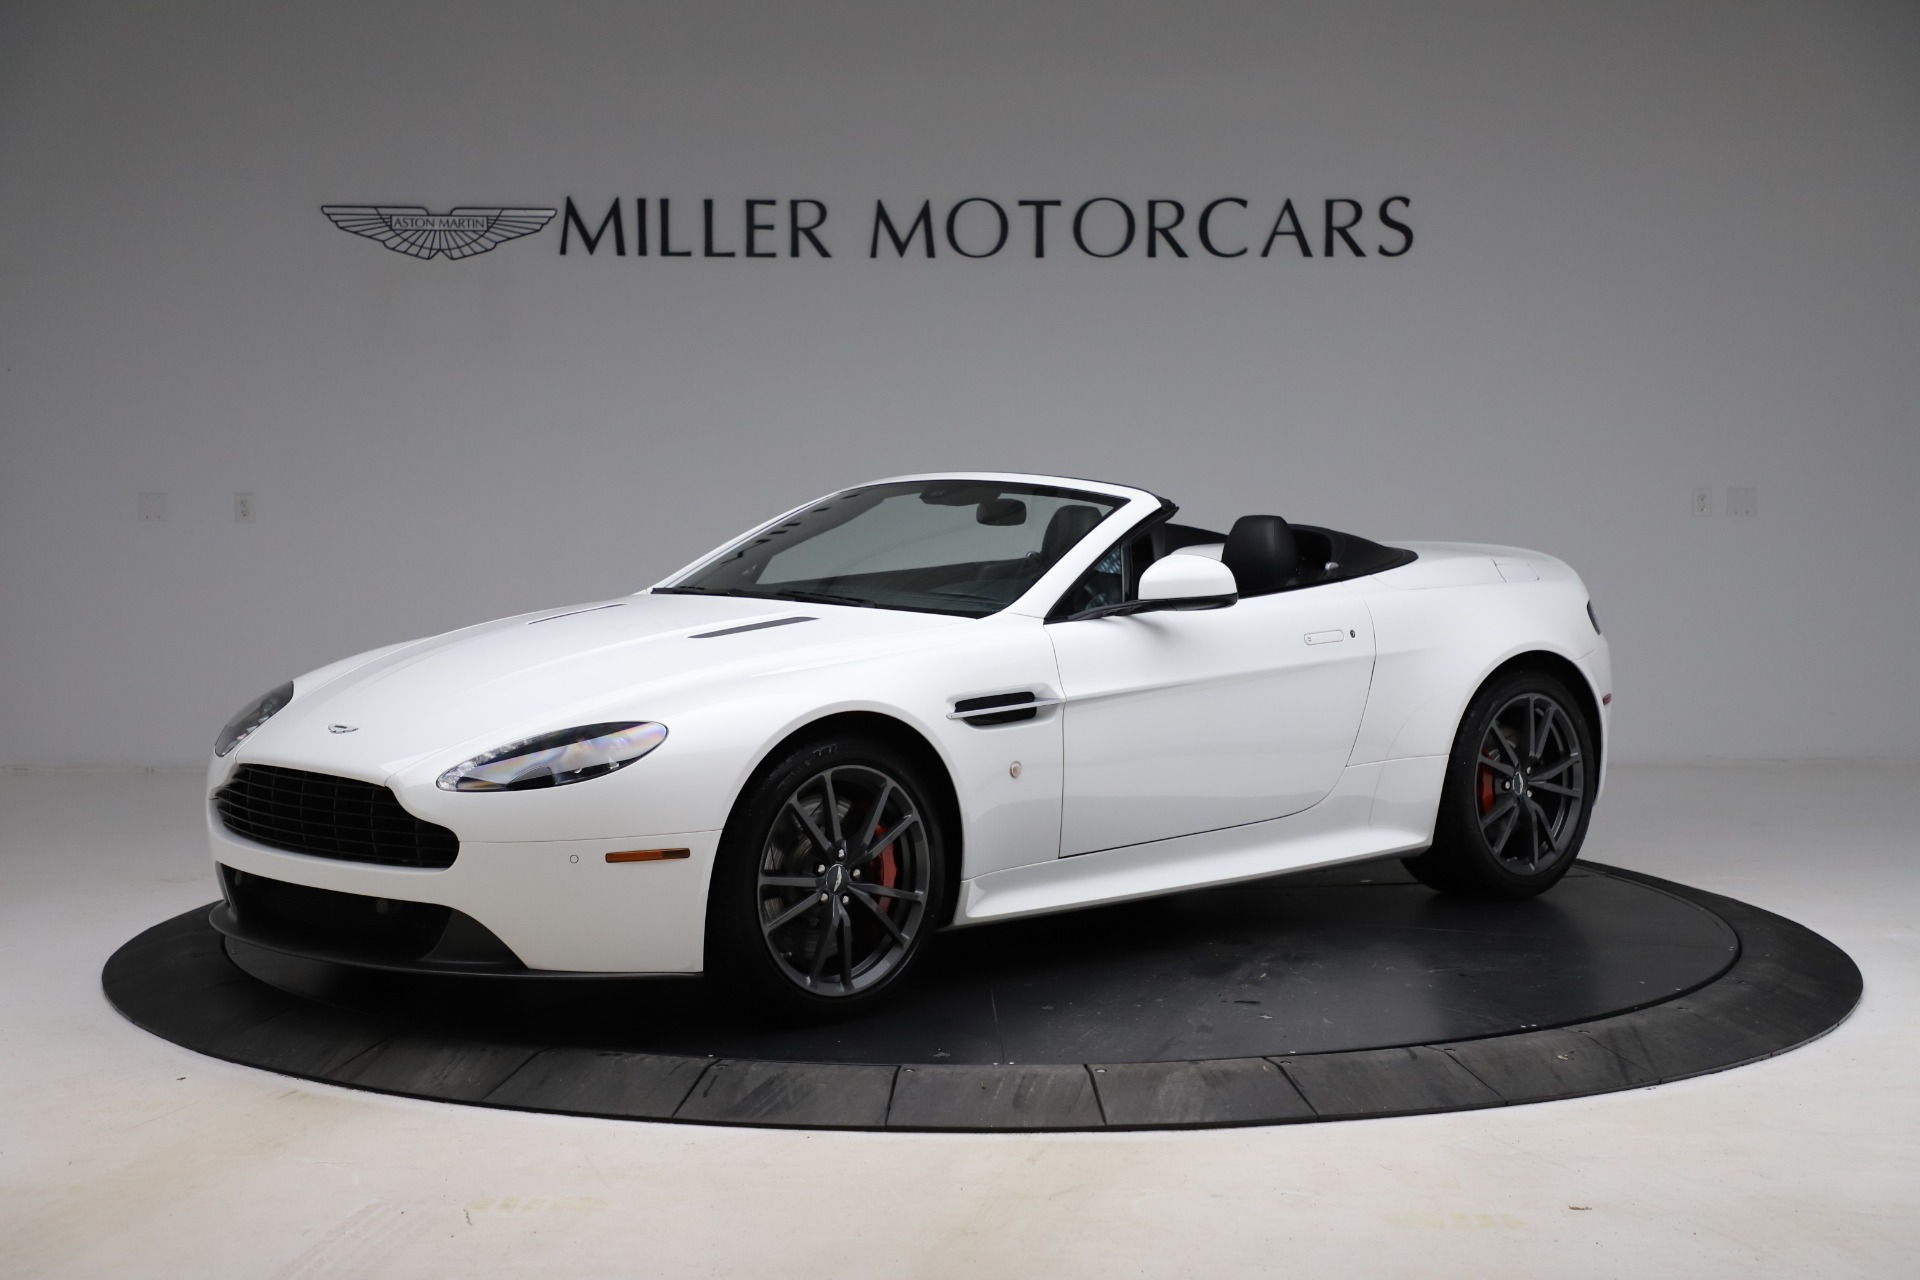 New 2015 Aston Martin Vantage GT GT Roadster for sale Sold at Pagani of Greenwich in Greenwich CT 06830 1